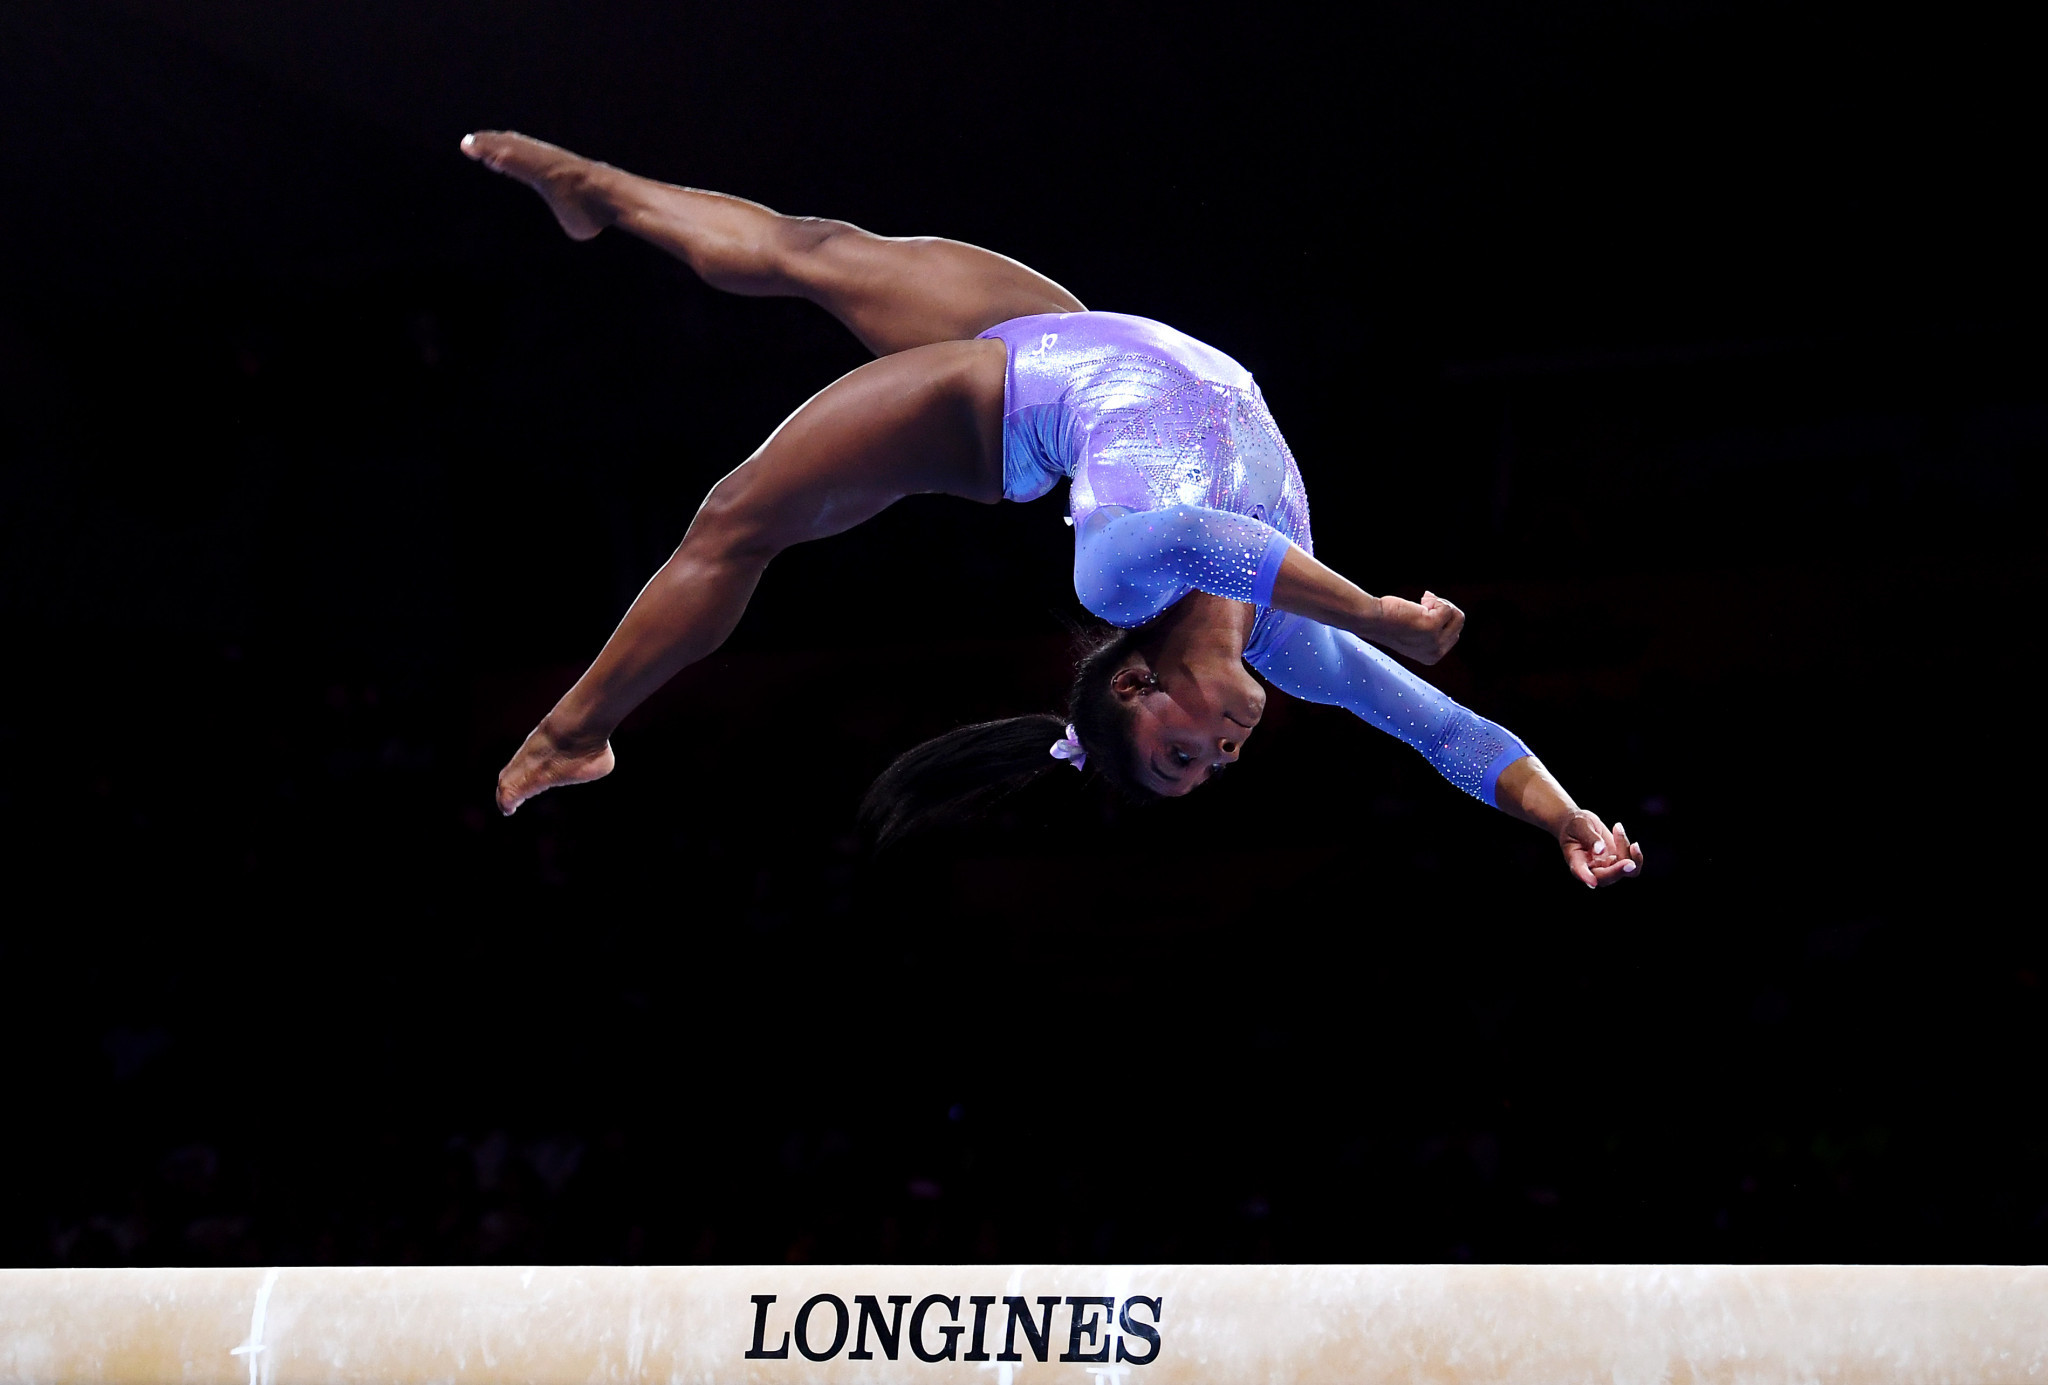 Gymnastics is now considered tier one in IOC rankings, with American Simone Biles a key figure in the sport's success ©Getty Images